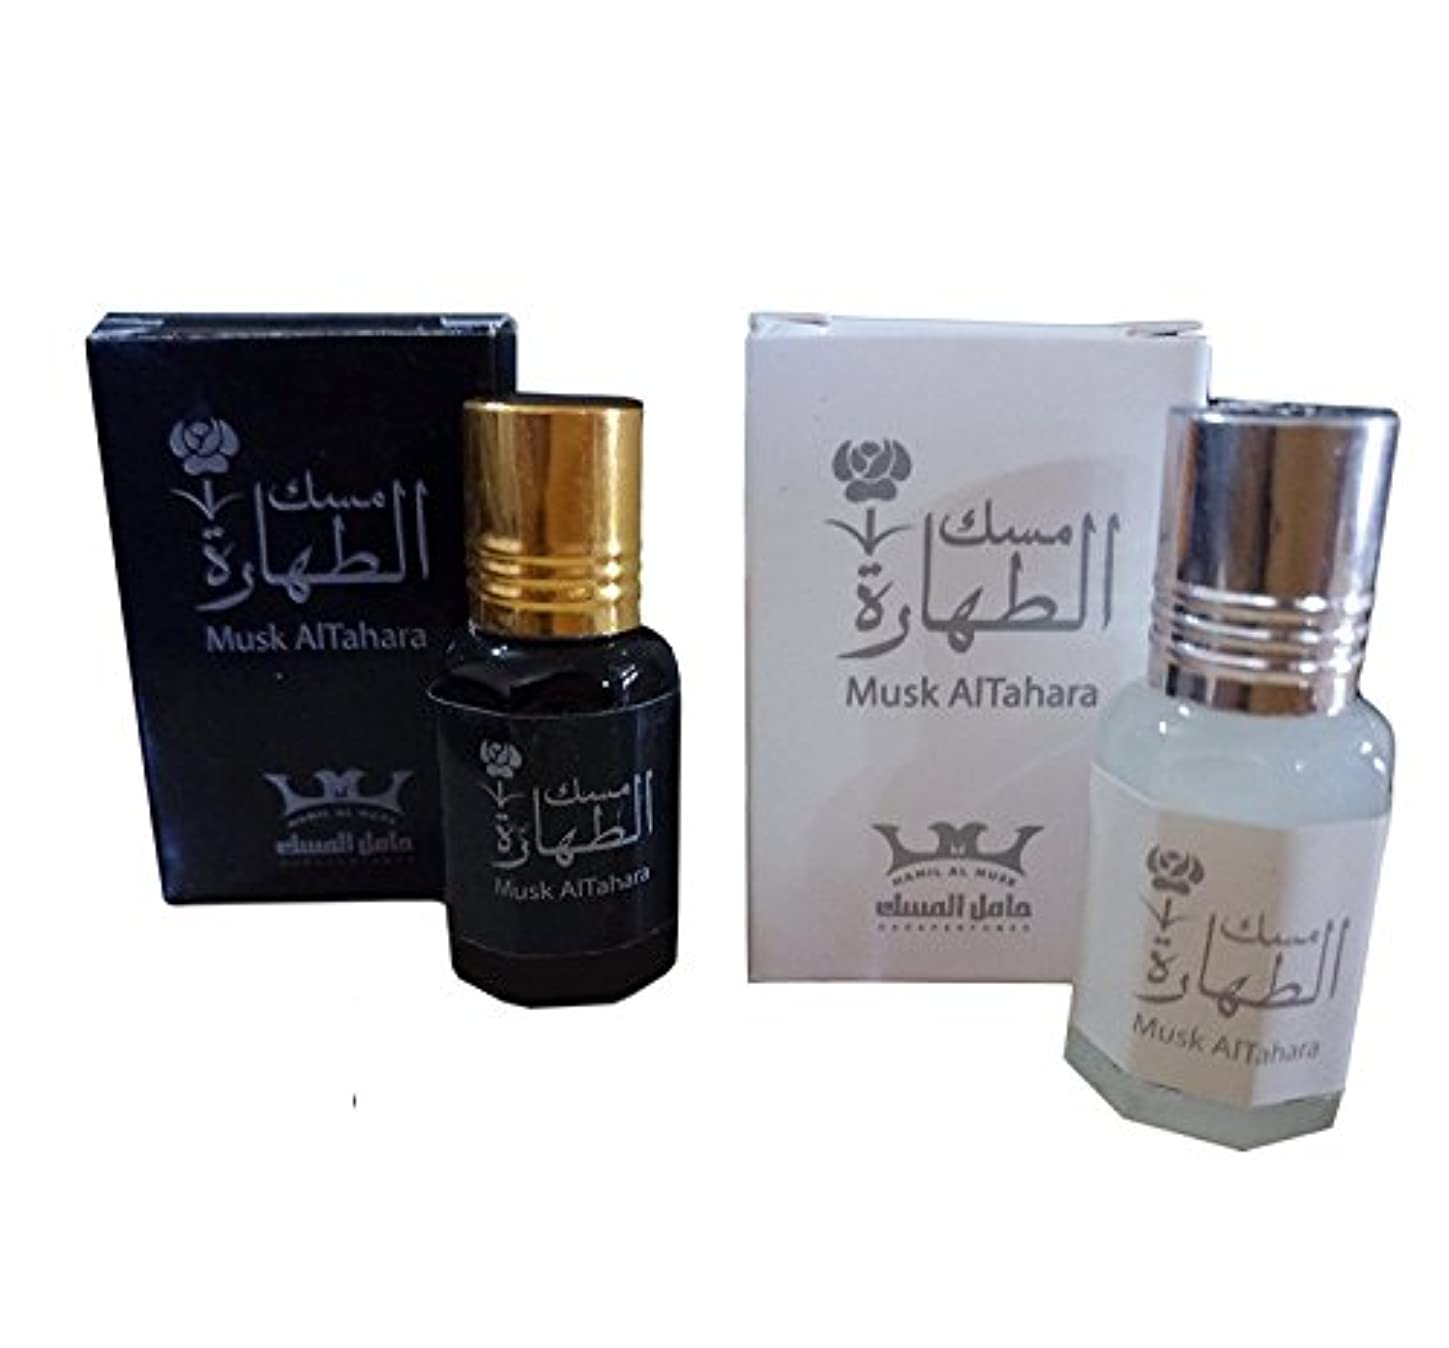 祖先いう逆にWomen Musk Al tahara Pure Saudi Altahara Perfume White & Black 10 ml Alcohol Free